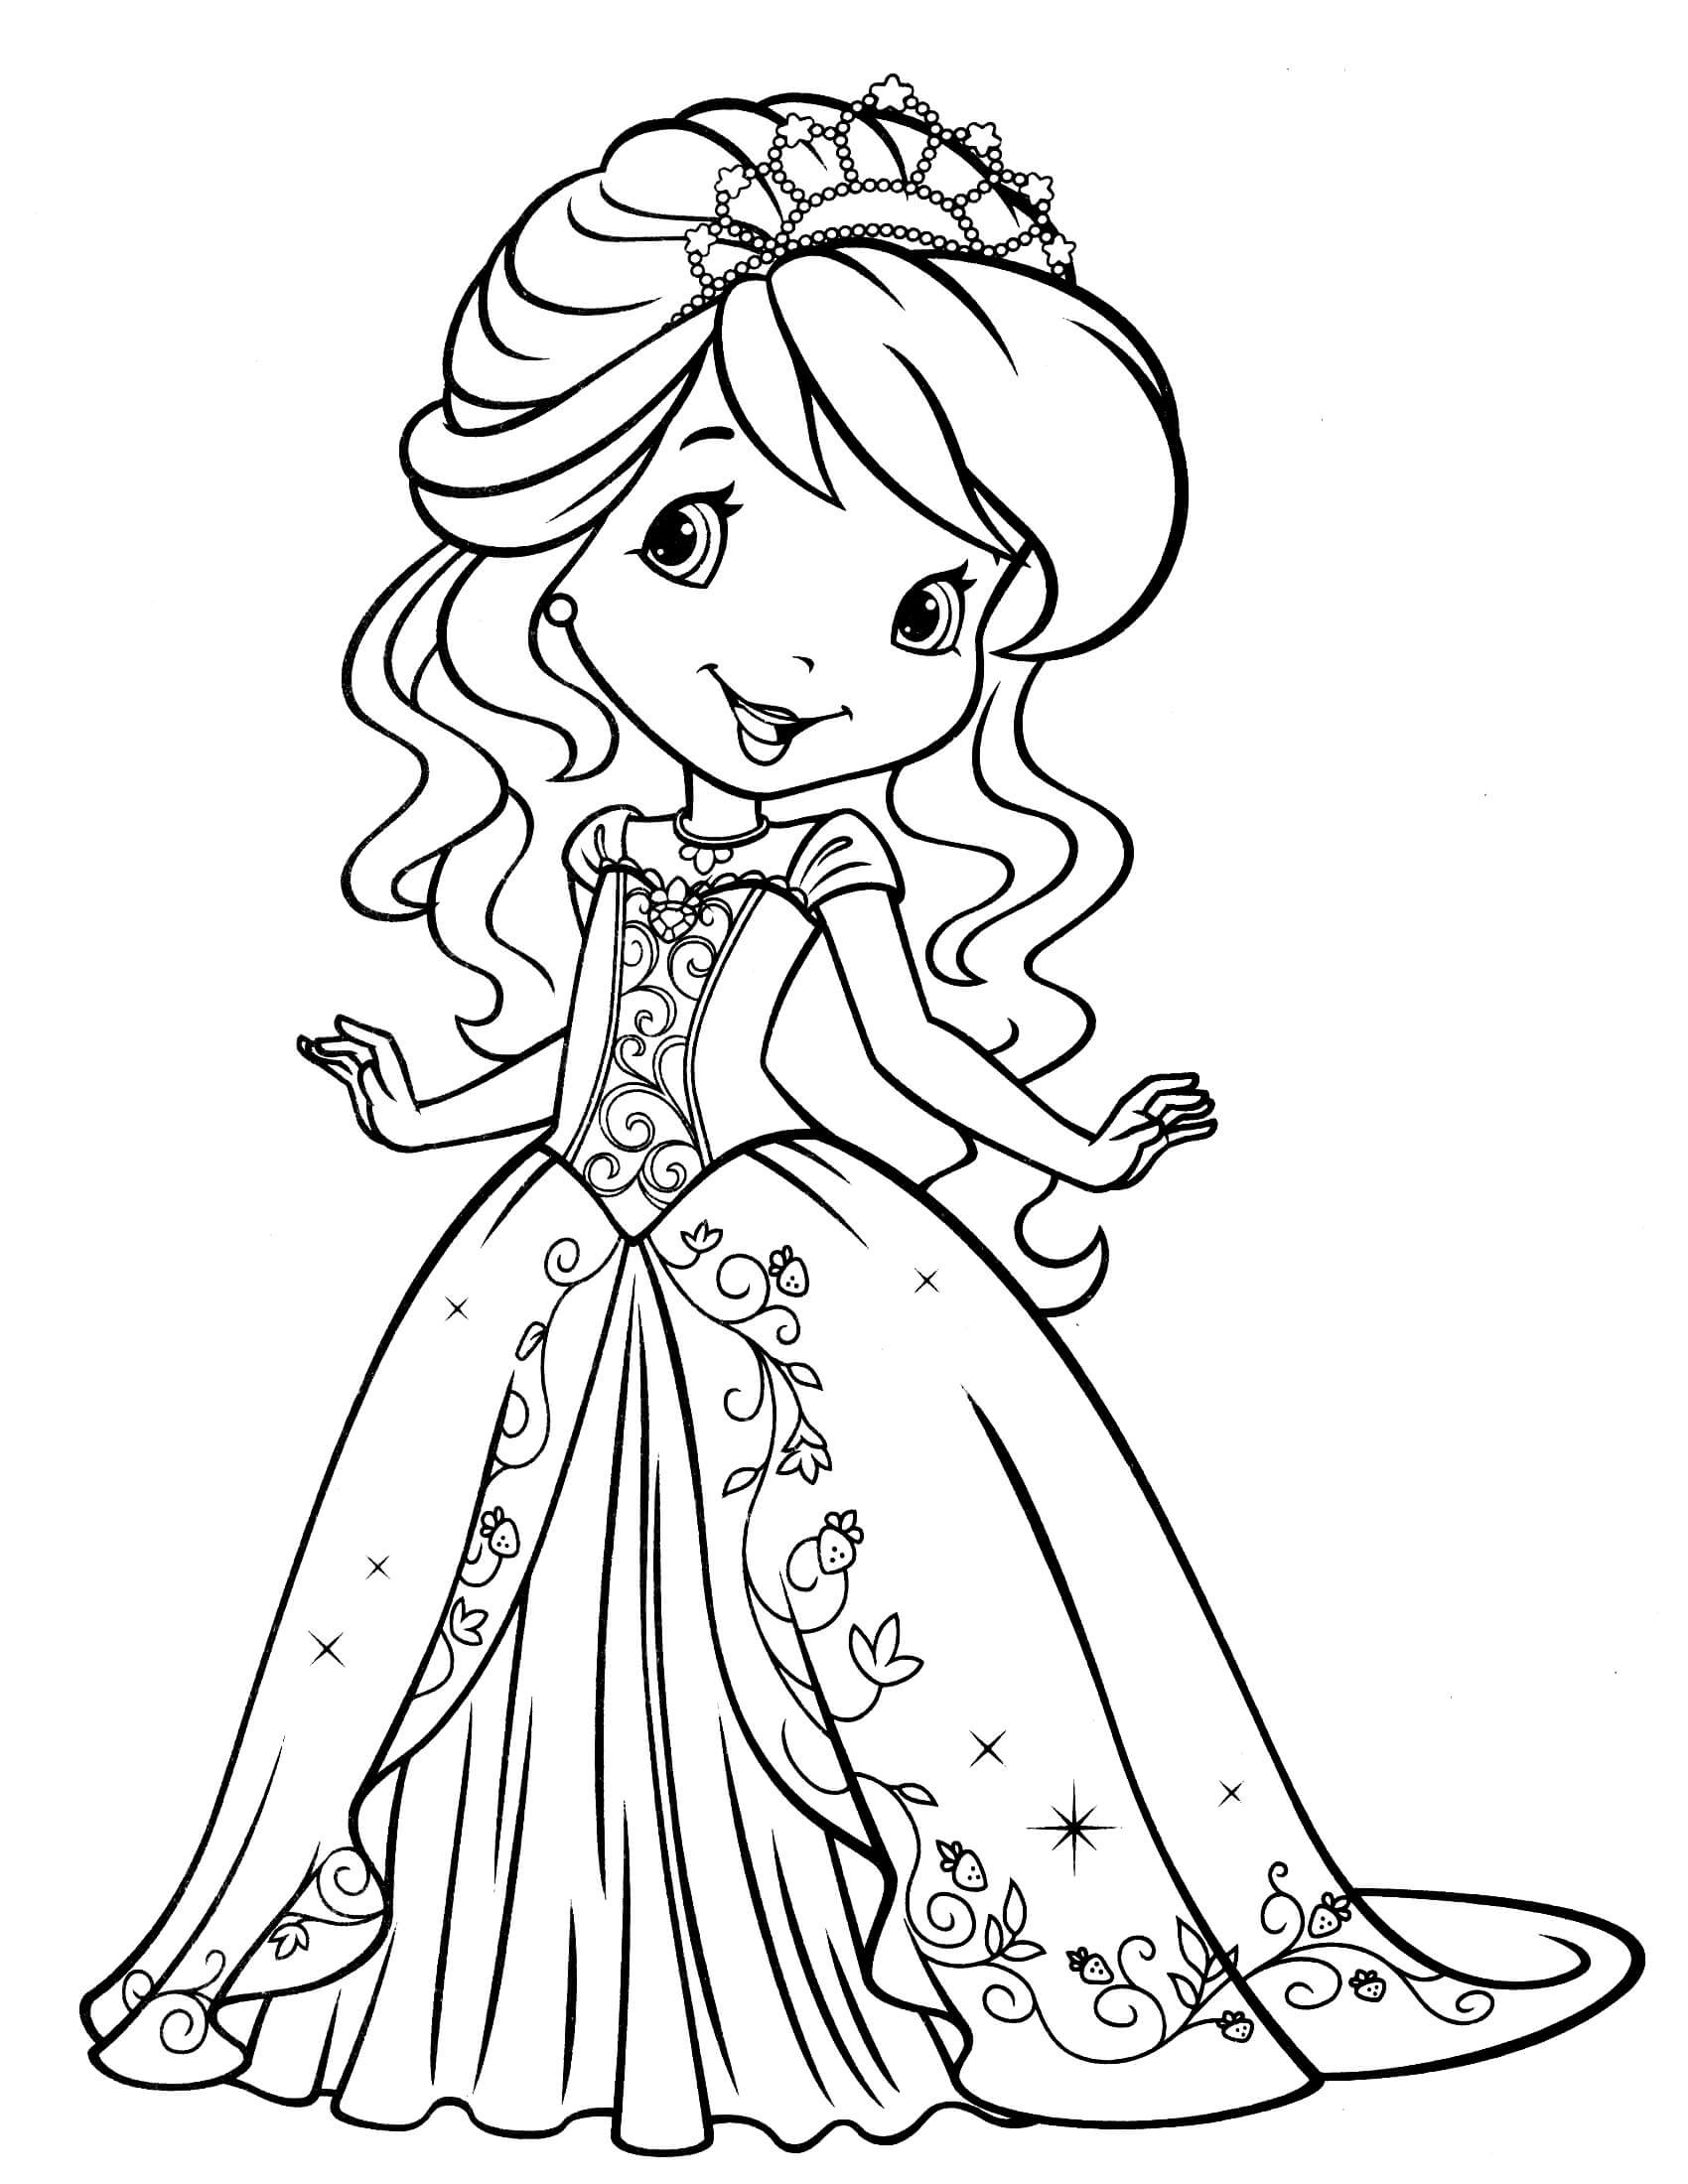 Strawberry Shortcake Coloring Page  Strawberry Shortcake 12 Coloringcolor